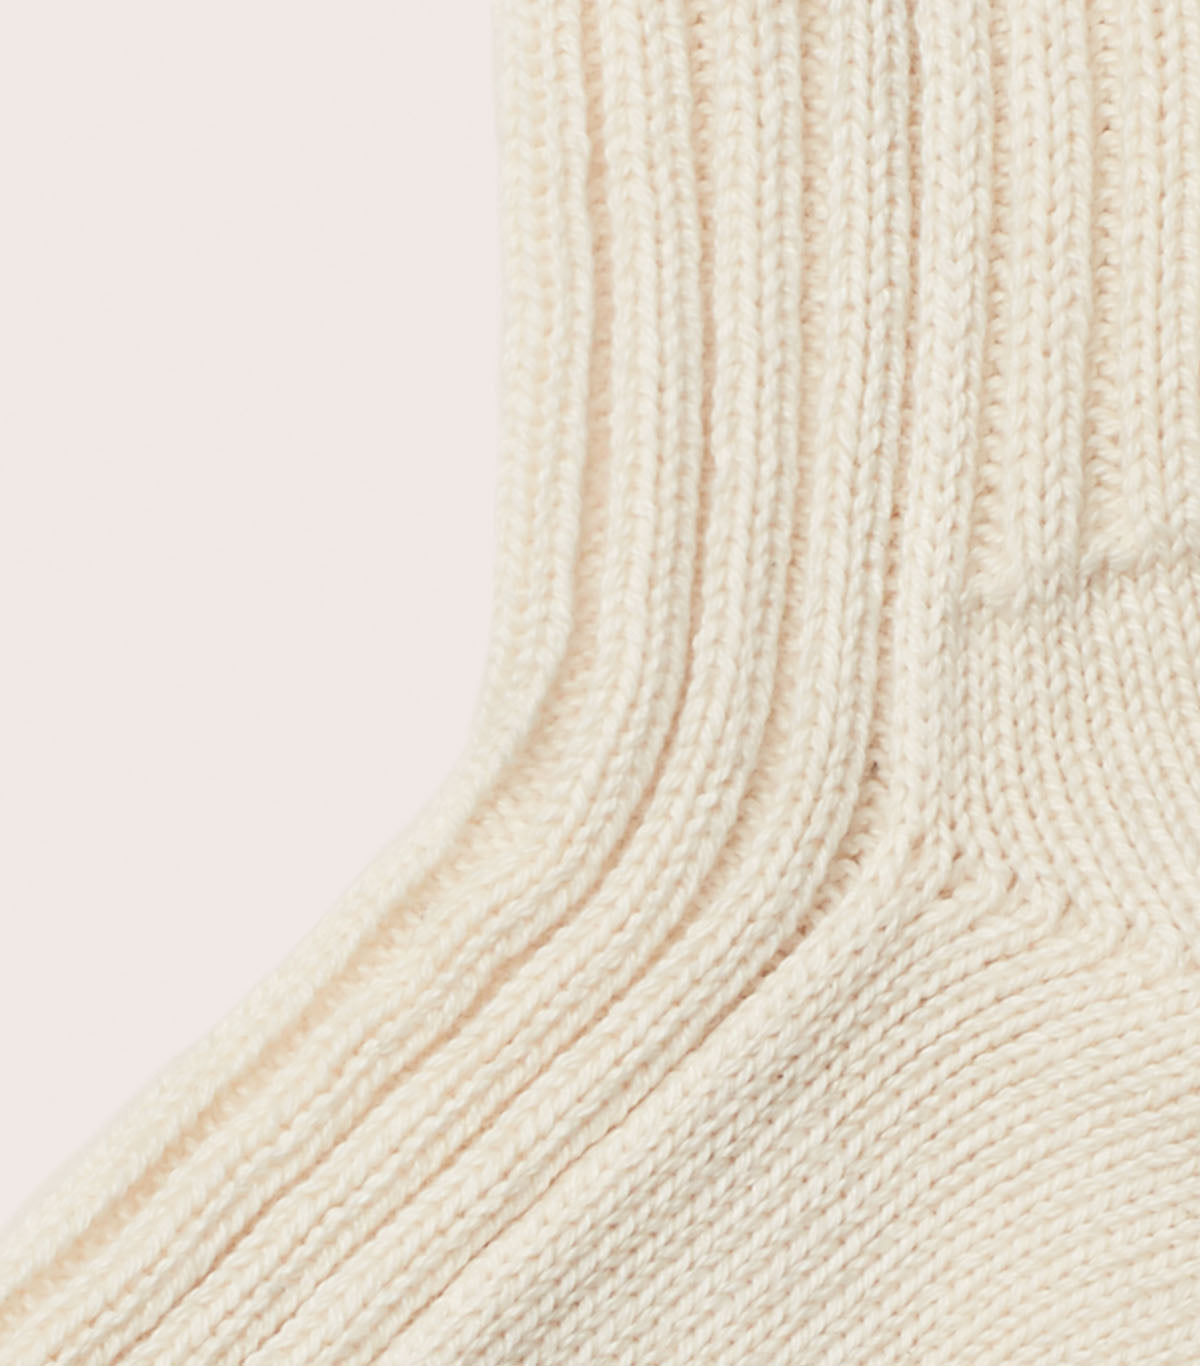 Cotton Short Socks - AUSOCKJSC_NAT